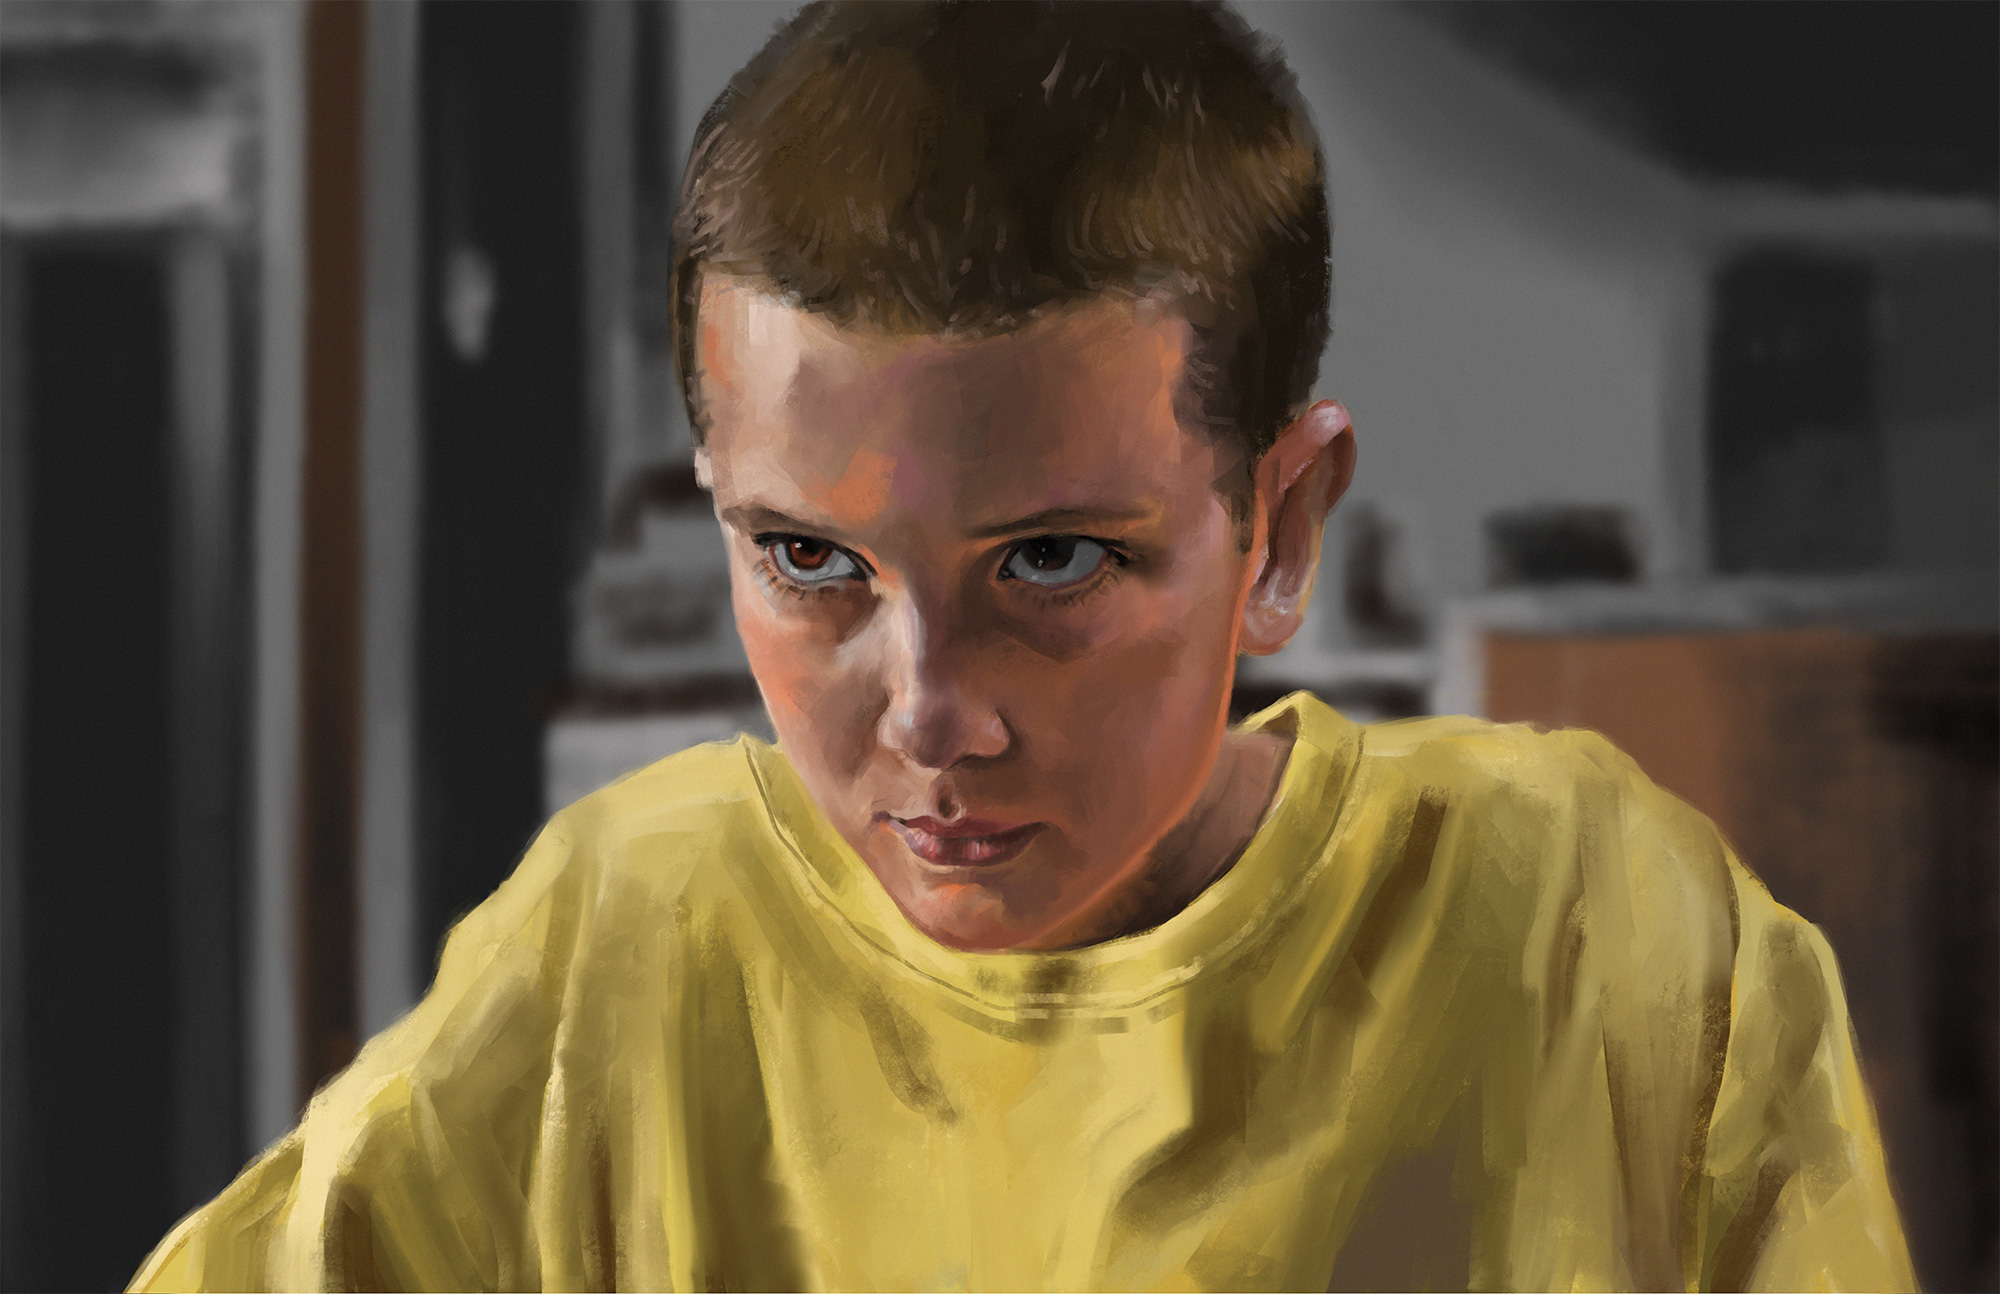 Millie Bobby Brown As Eleven, 2017